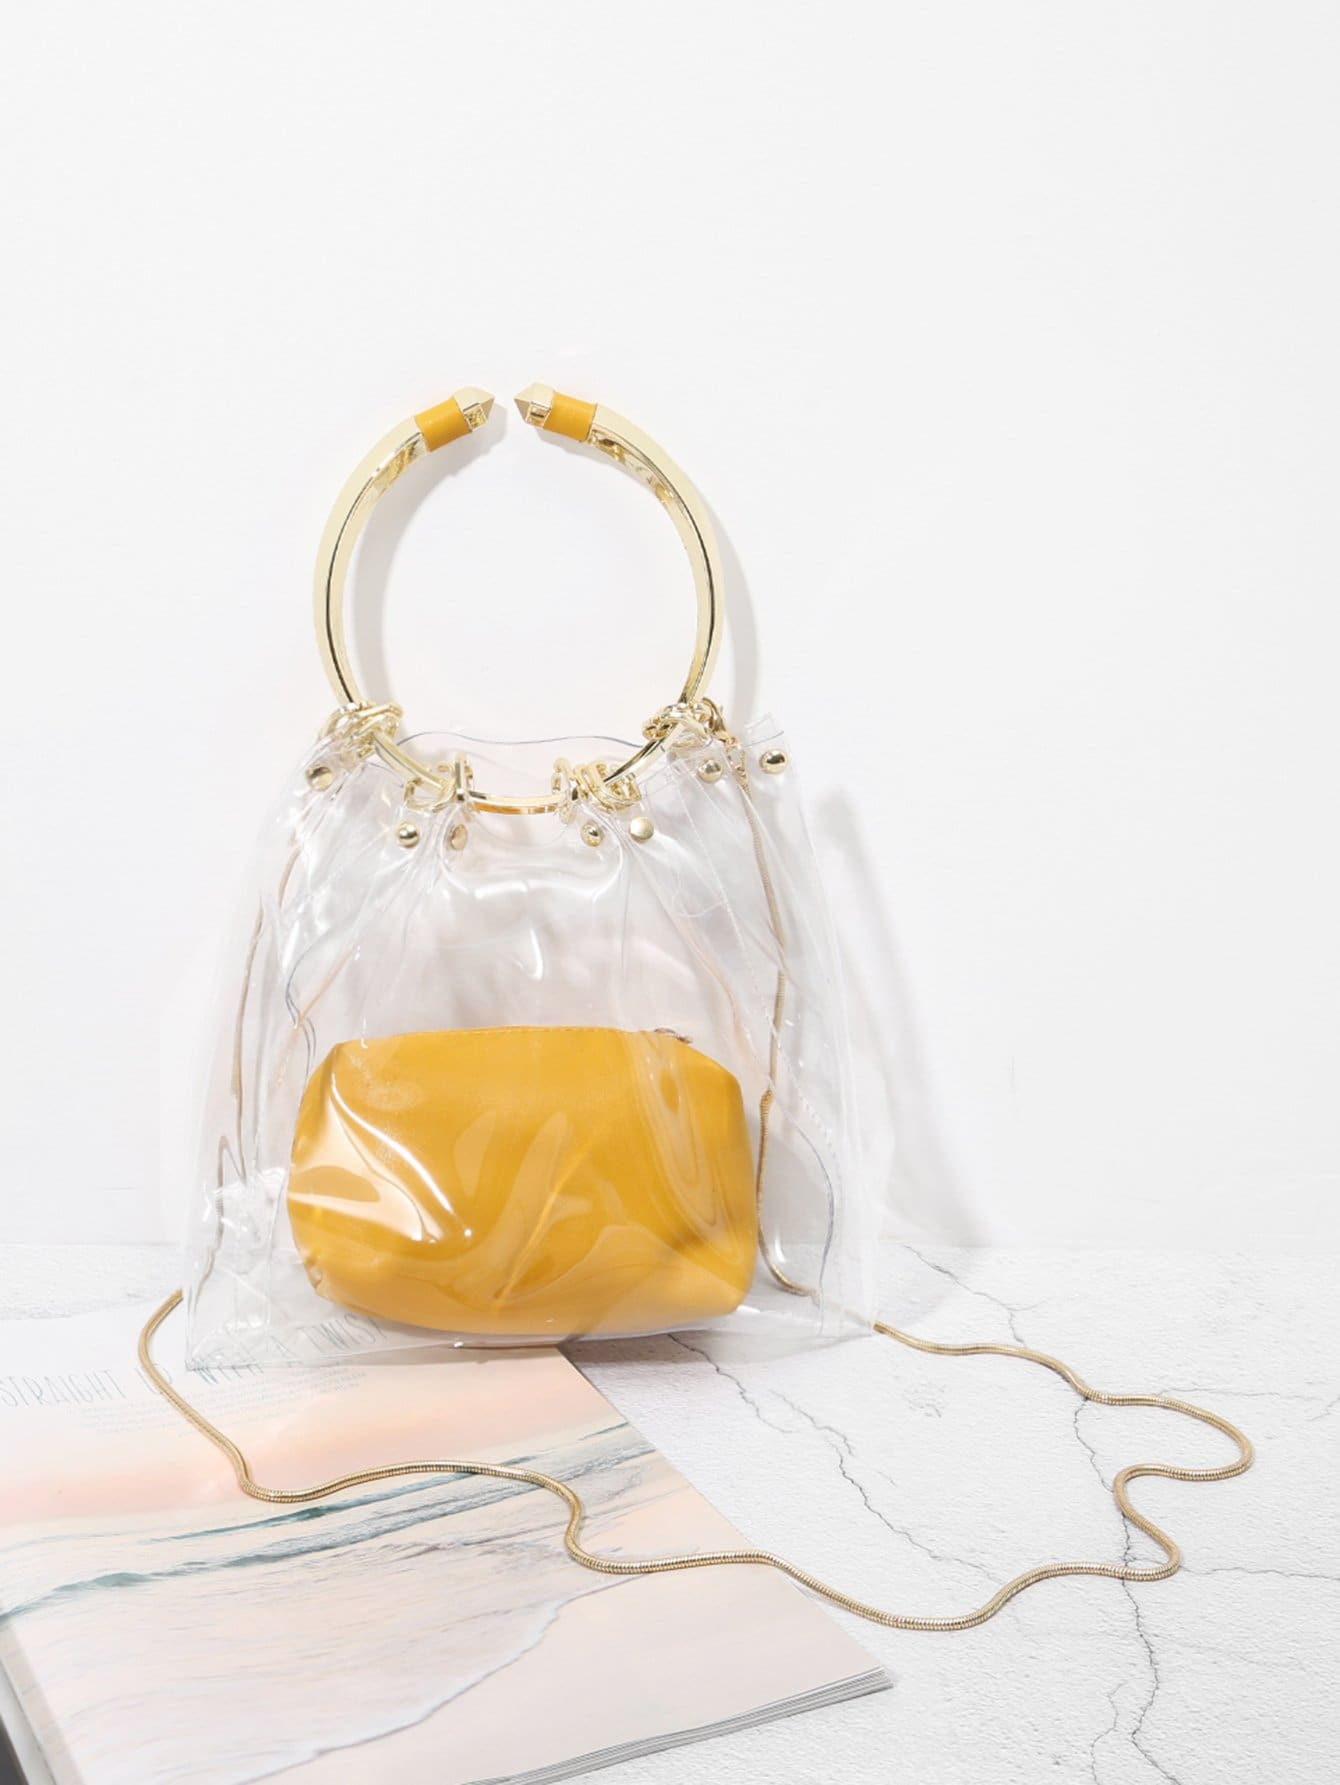 Clear PVC Tote Bag With Inner Pouch custom transparent clear pvc make up tote bag with double handles